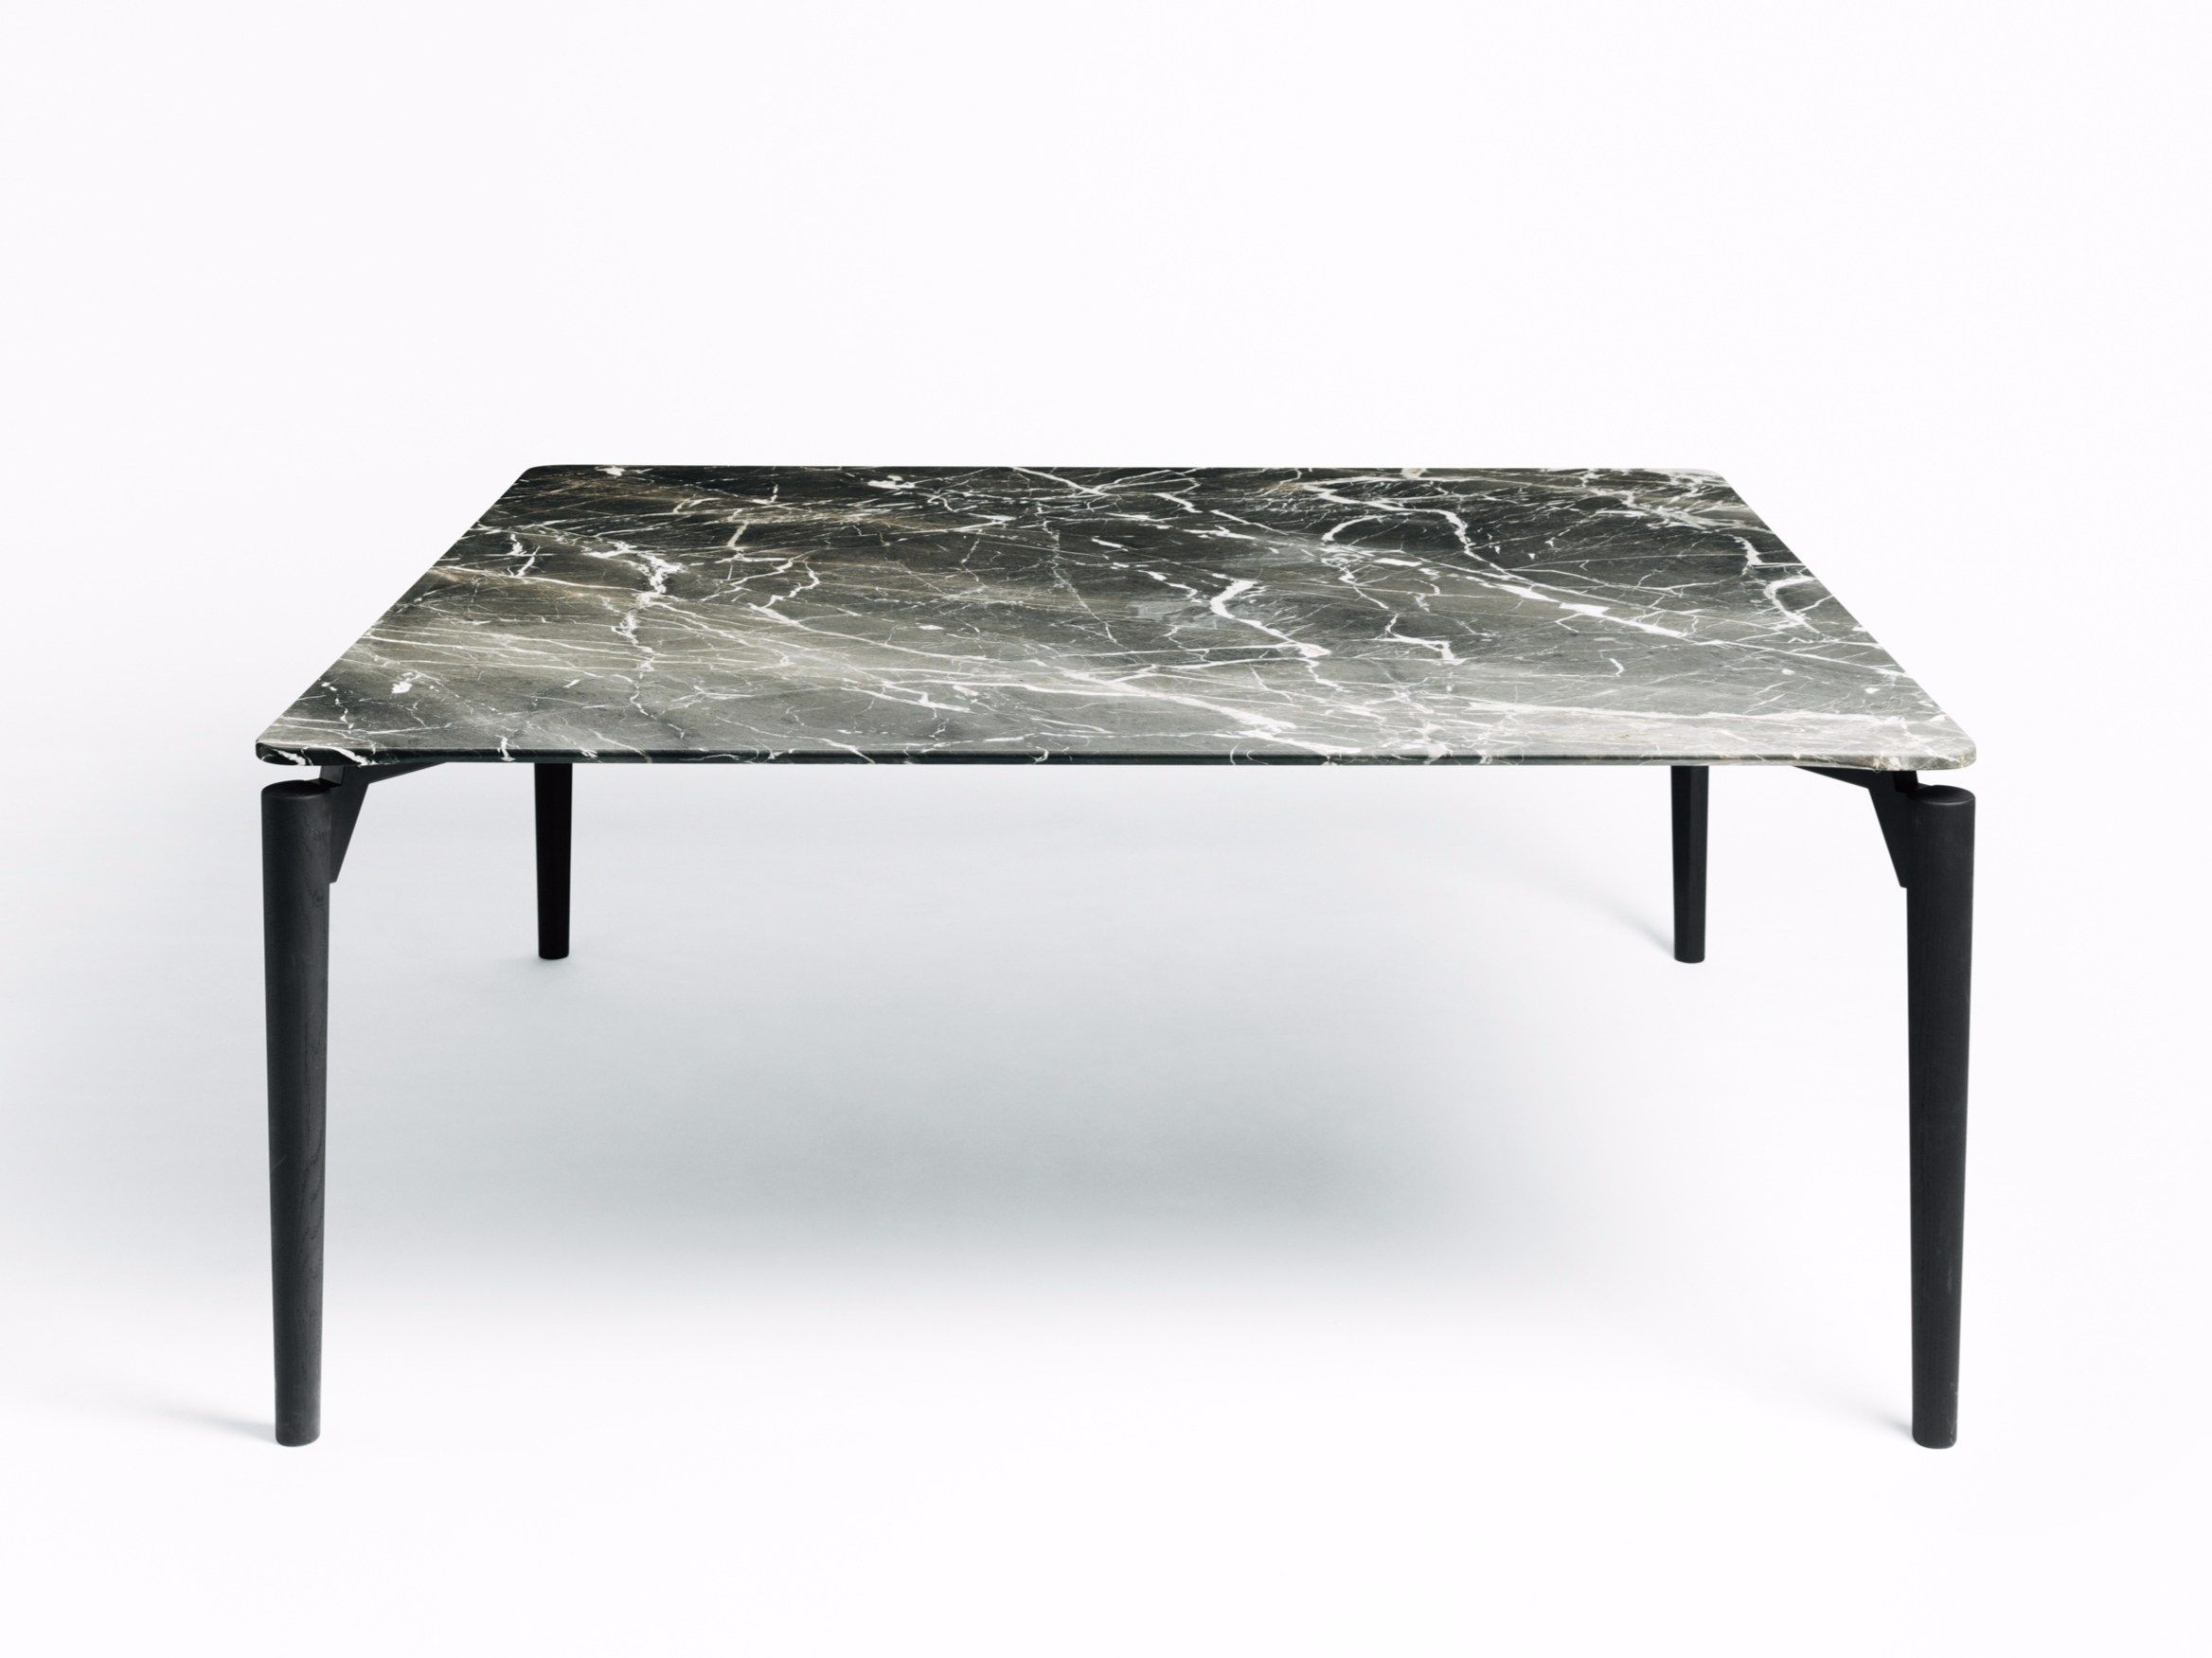 Table Florence Knoll Prix download the catalogue and request prices of tavolo '95